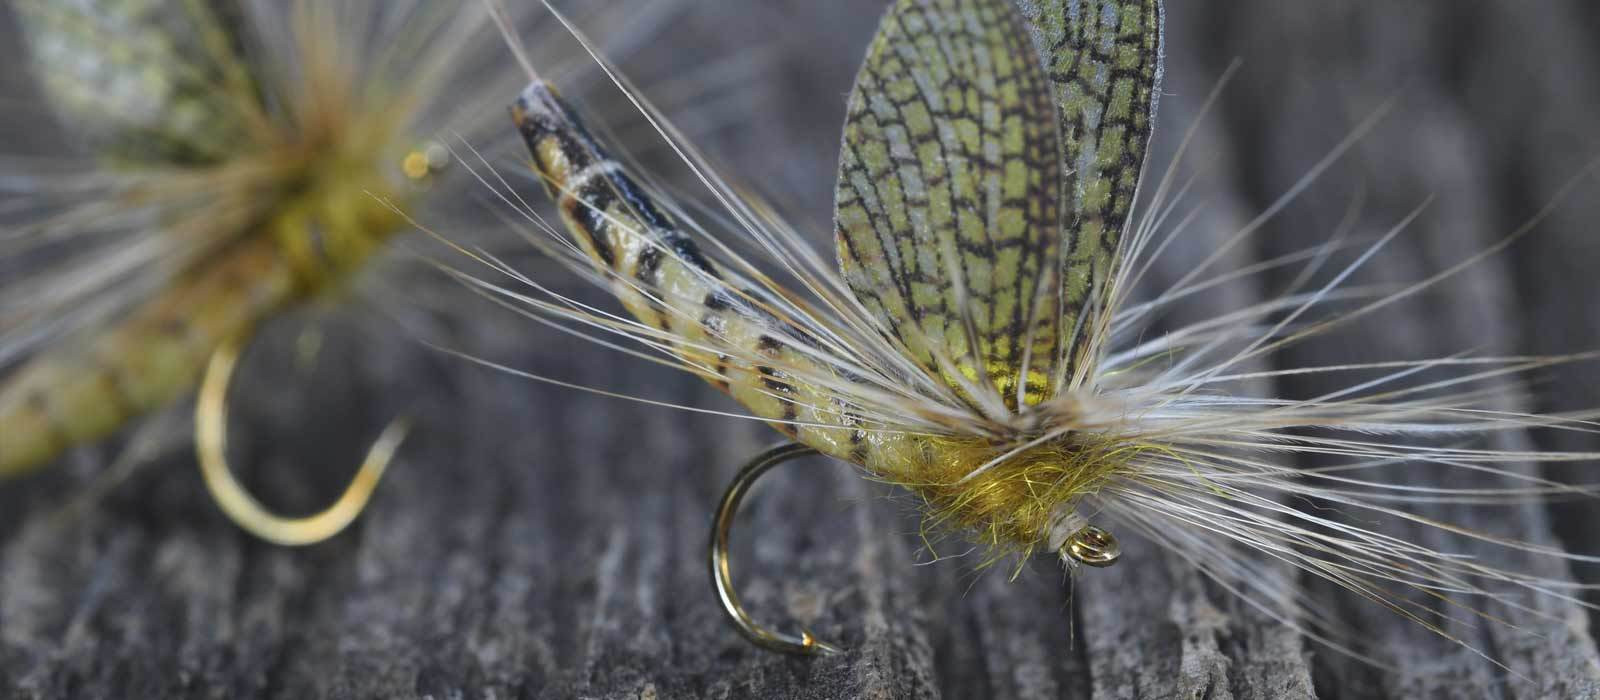 Realistic Dry Flies